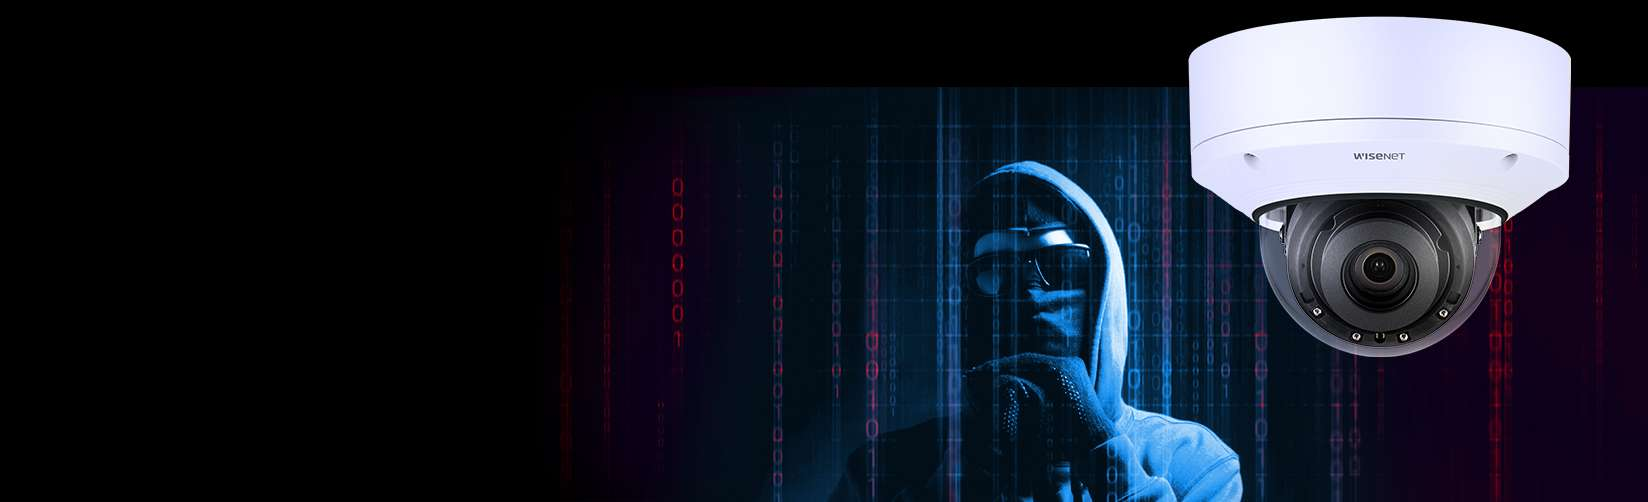 CyberSecurity_Banner_v2